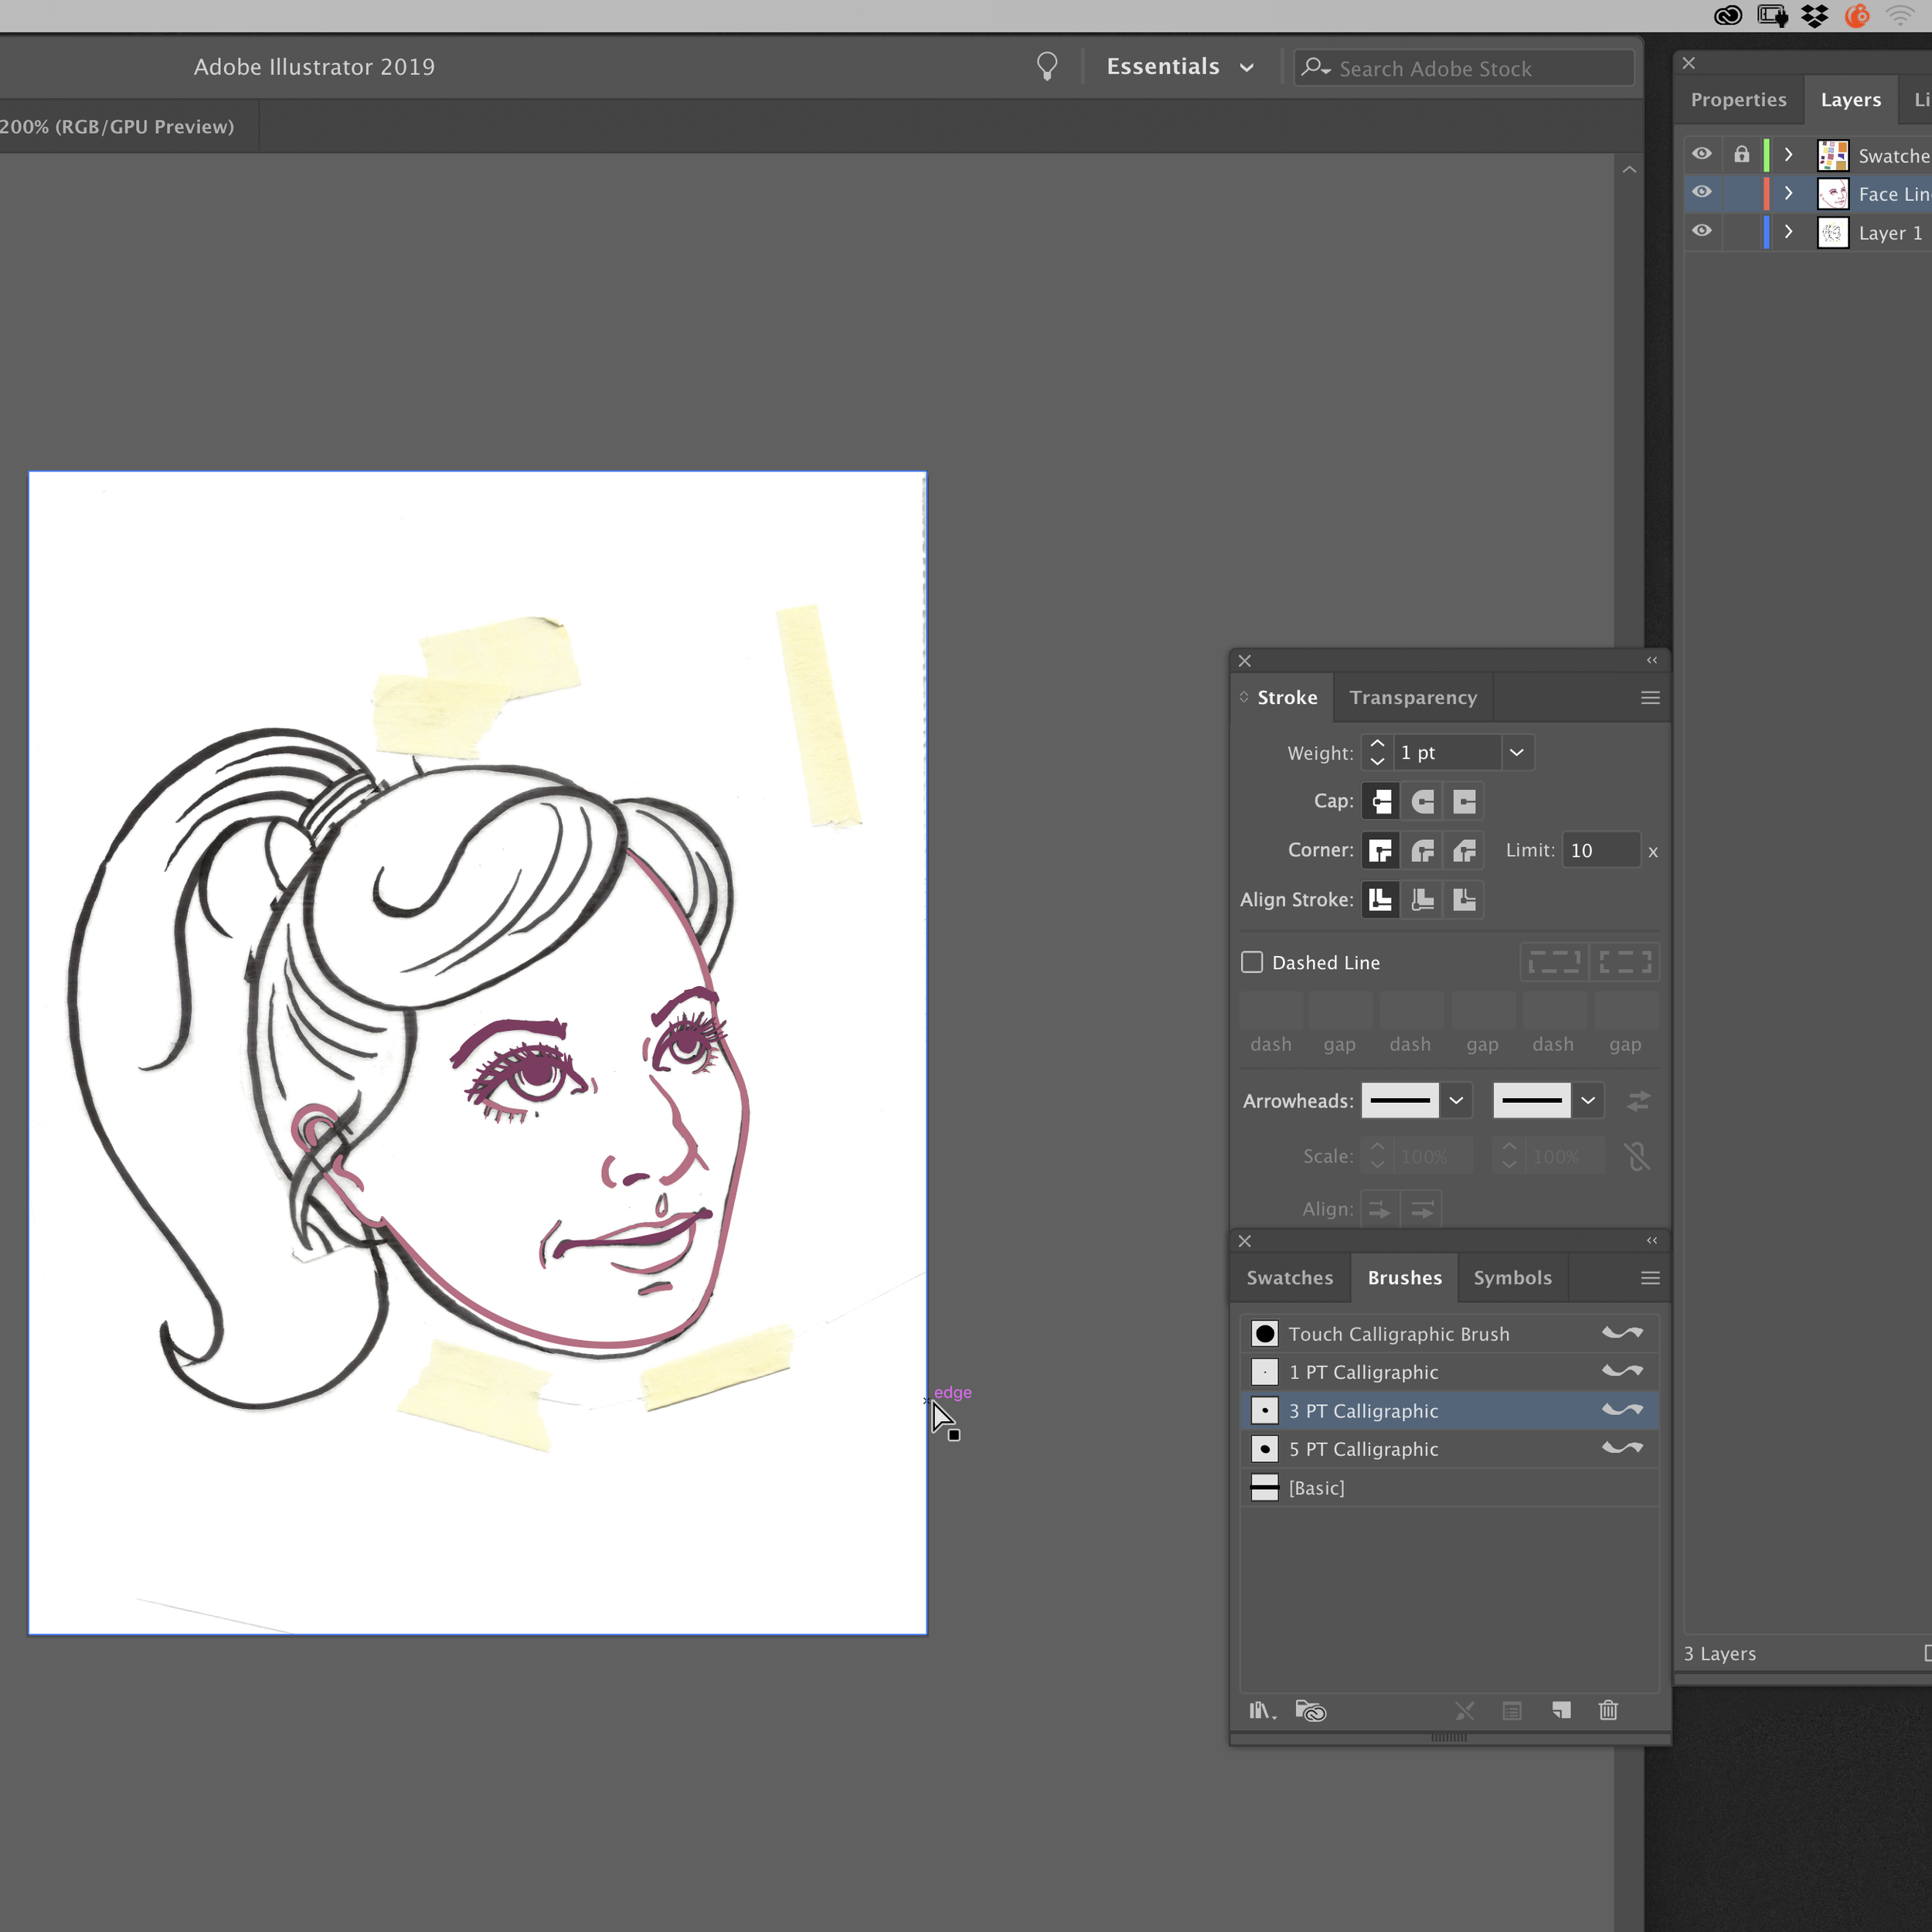 Ink Drawing - I created streamlined outlines in ink and scanned the ink drawing. Here I've just begun creating the vector outlines using the calligraphy brush and pen tools.